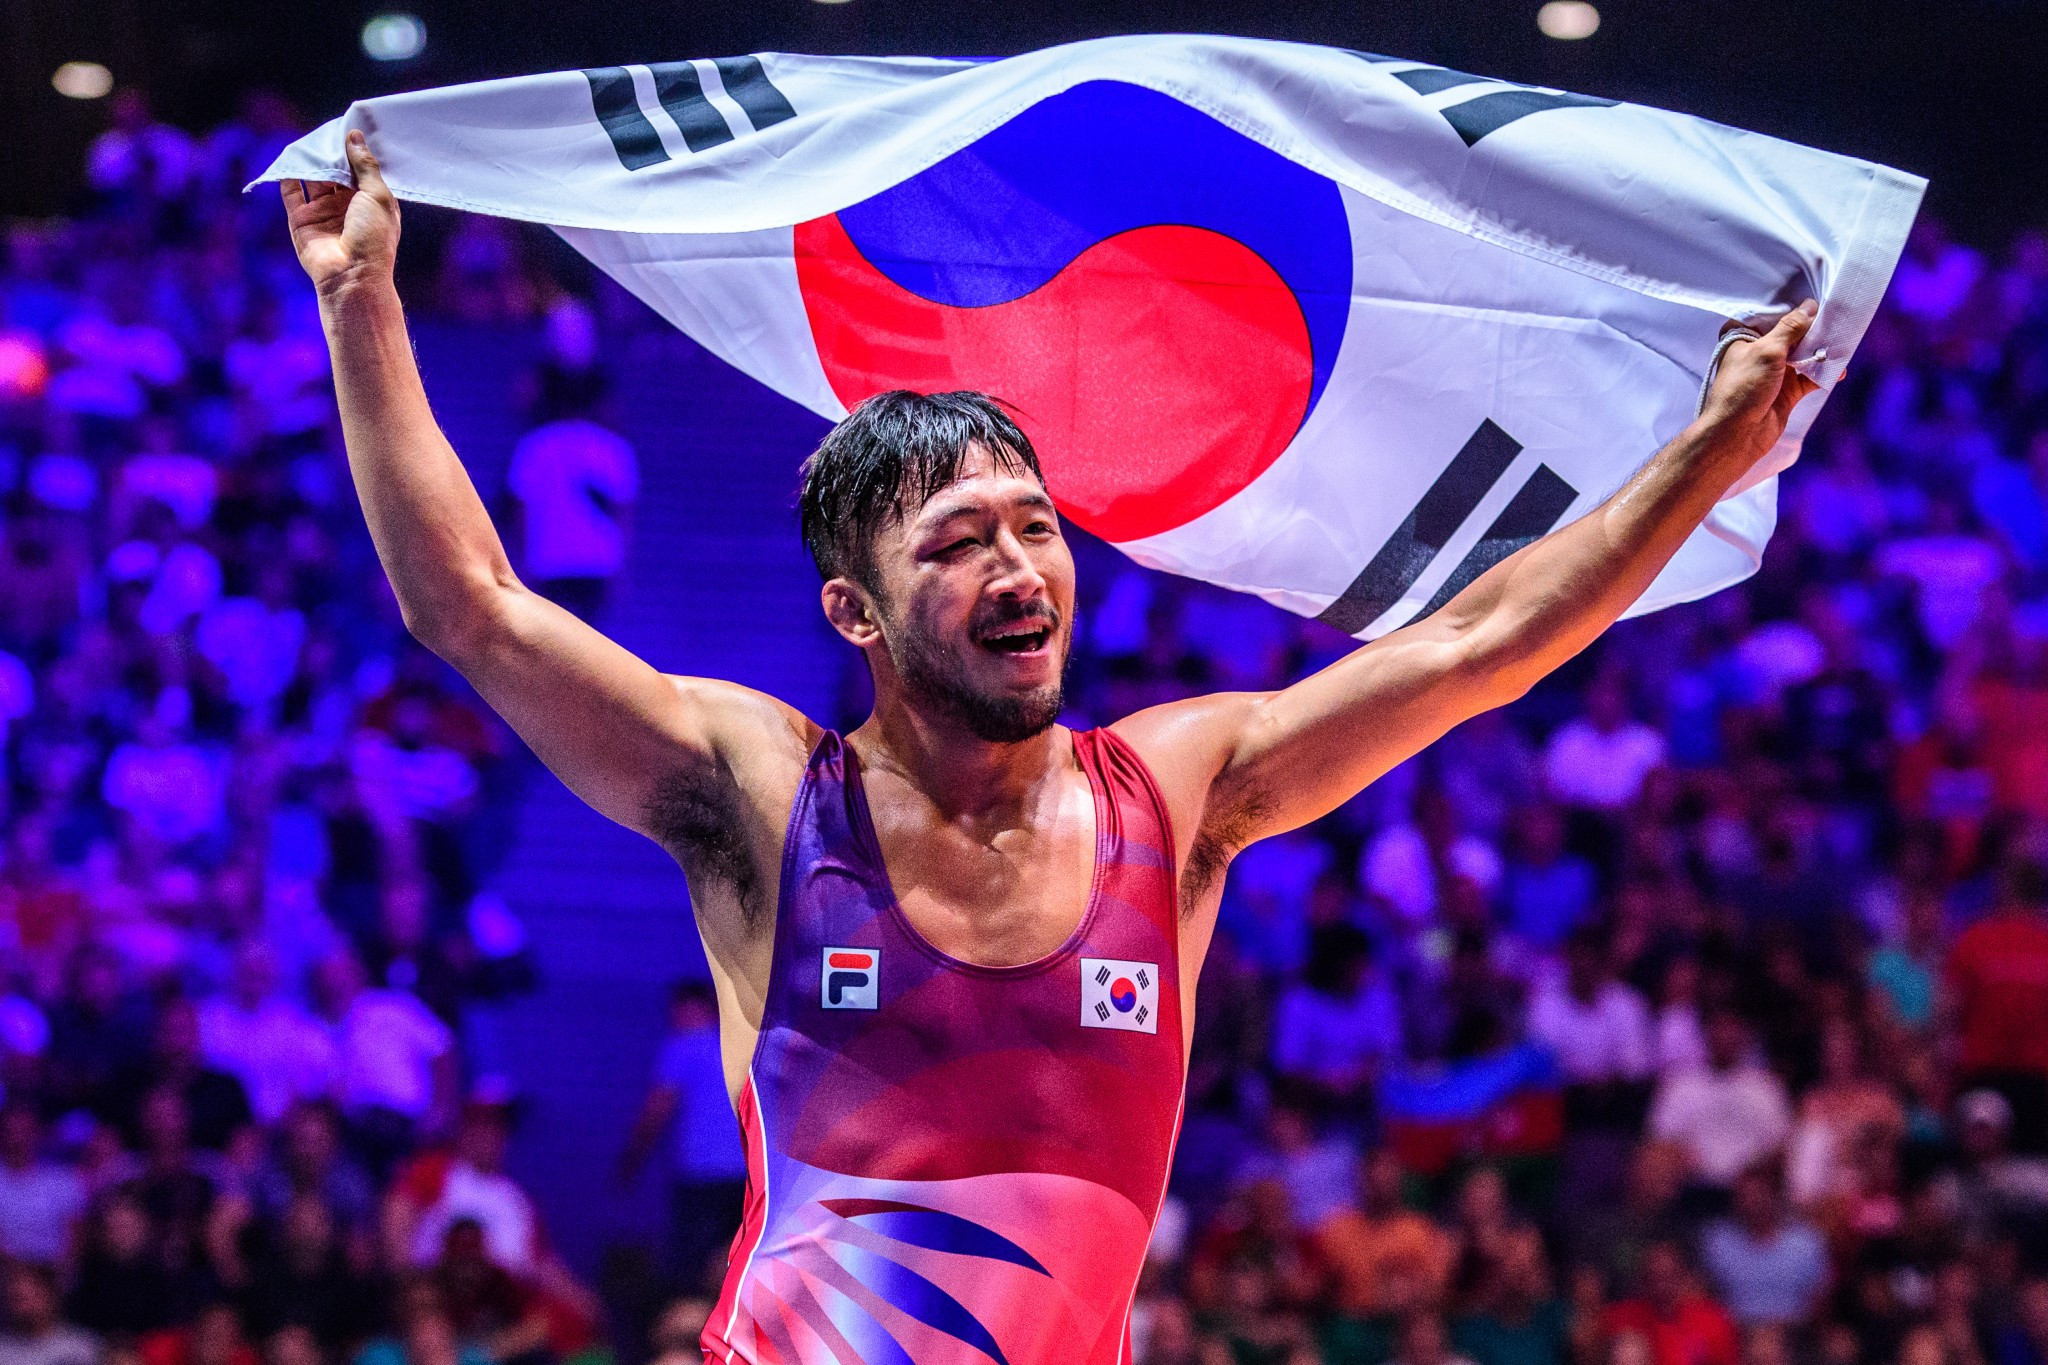 Ryu was in fine form as he returned to the top of the World Championships podium after a four-year hiatus ©UWW